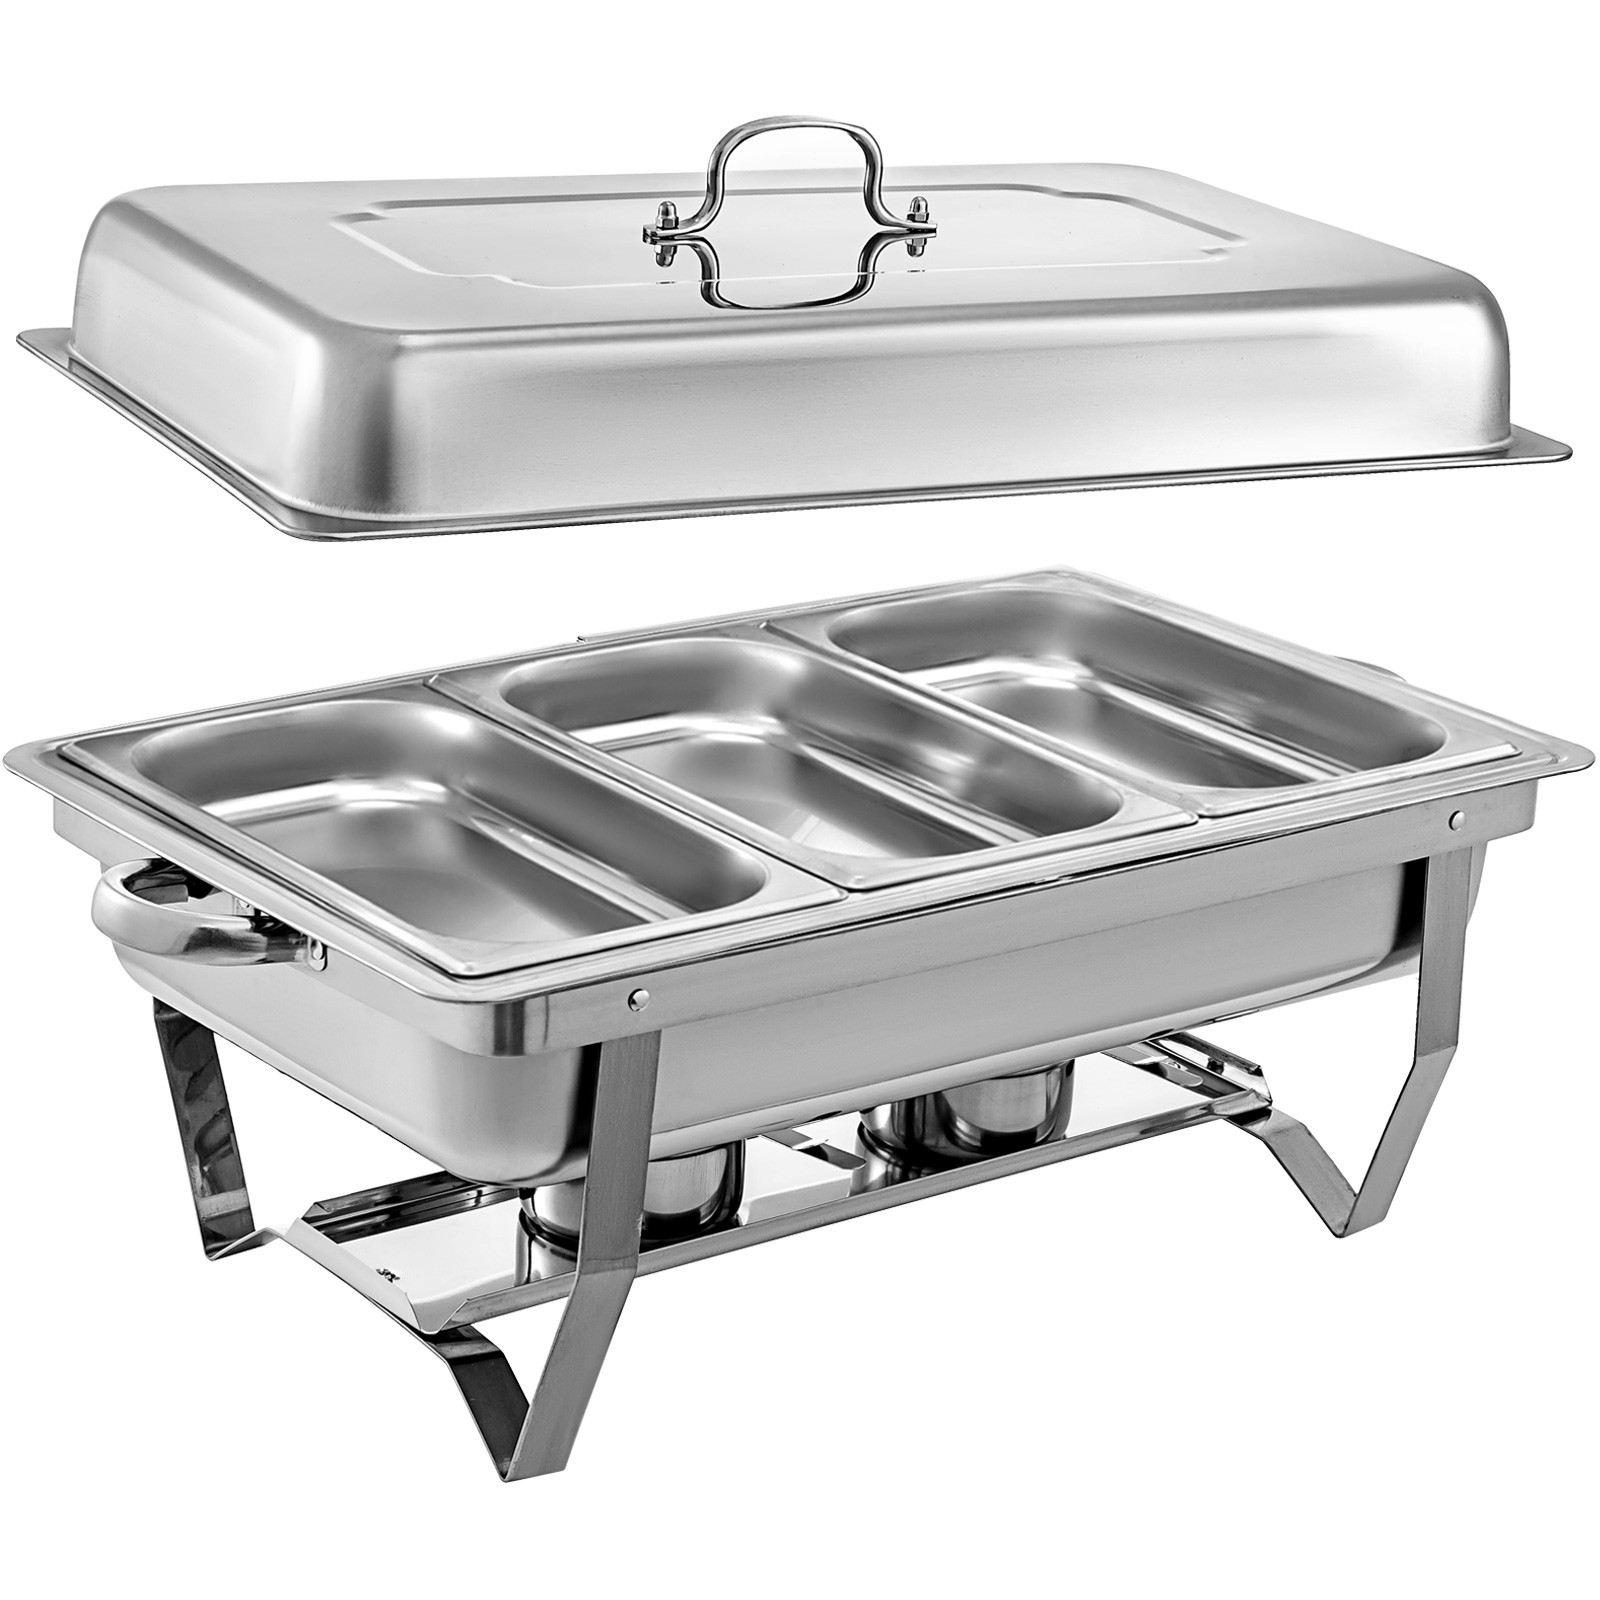 thumbnail 96 - Multi-Stainless-Steel-Chafing-Dish-Bain-Marie-Bow-Catering-Dish-Hotpot-Server